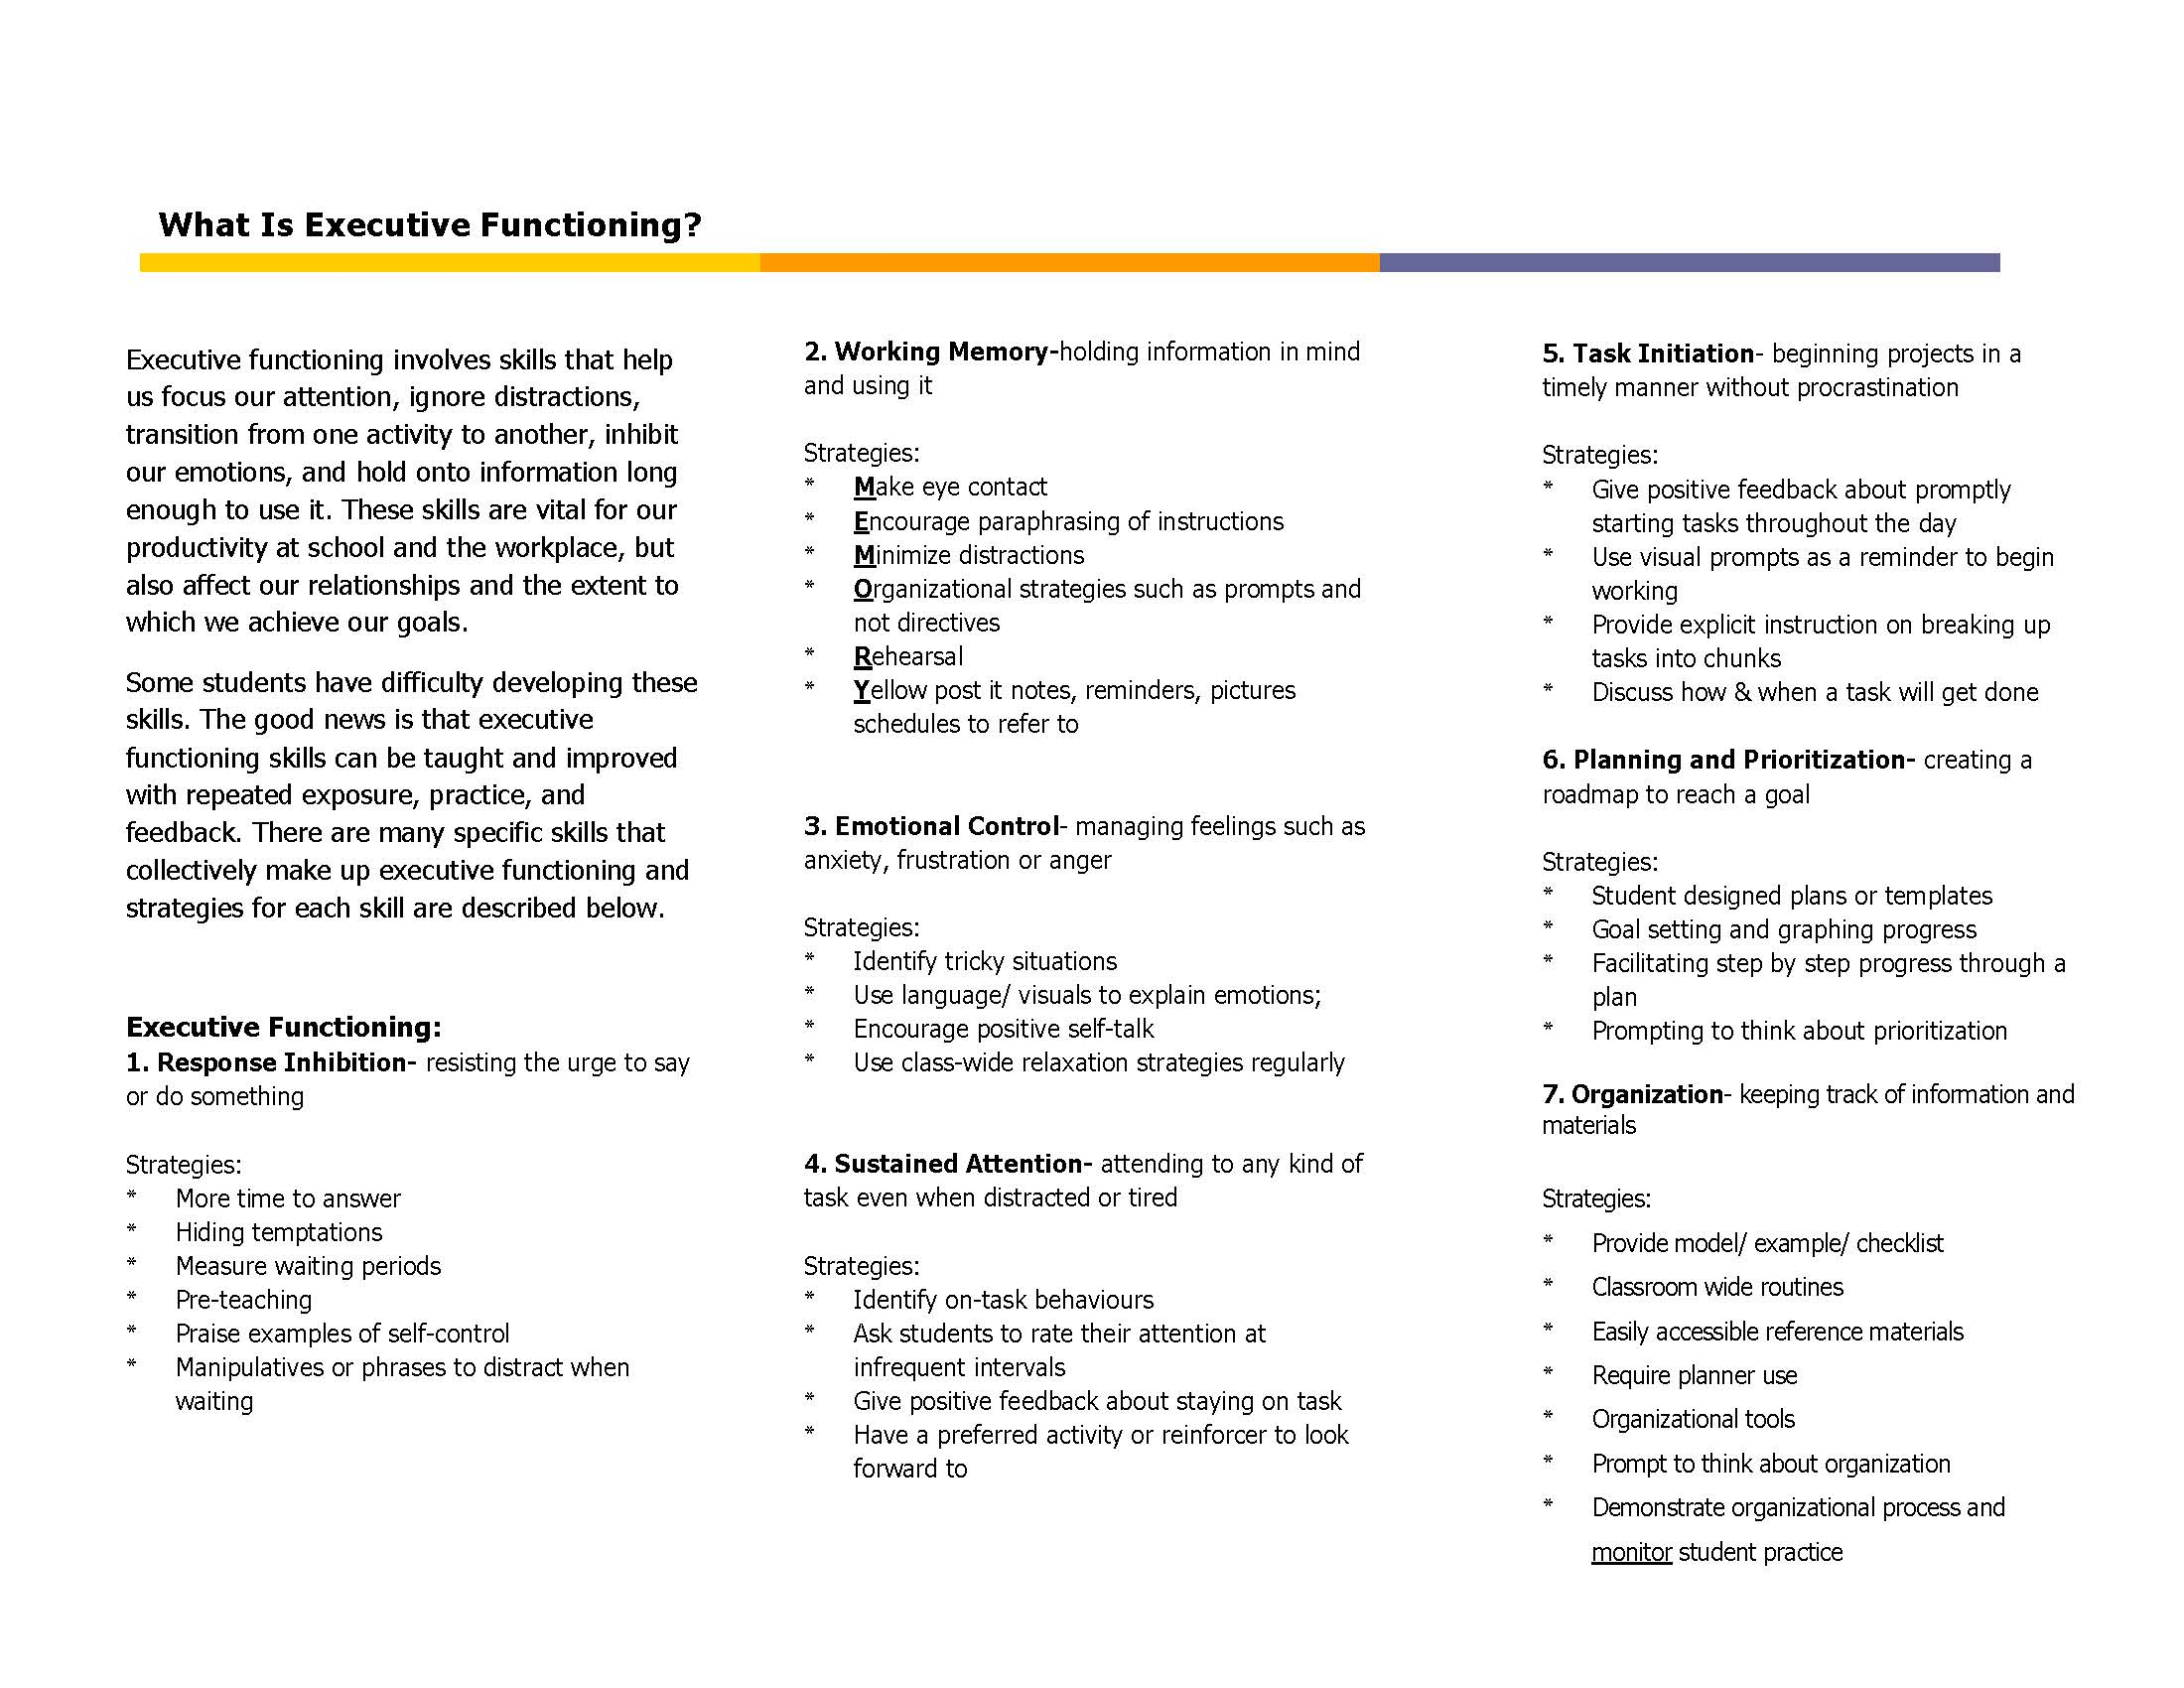 Executive fx handout for LD conference 2018_Page_2.jpg